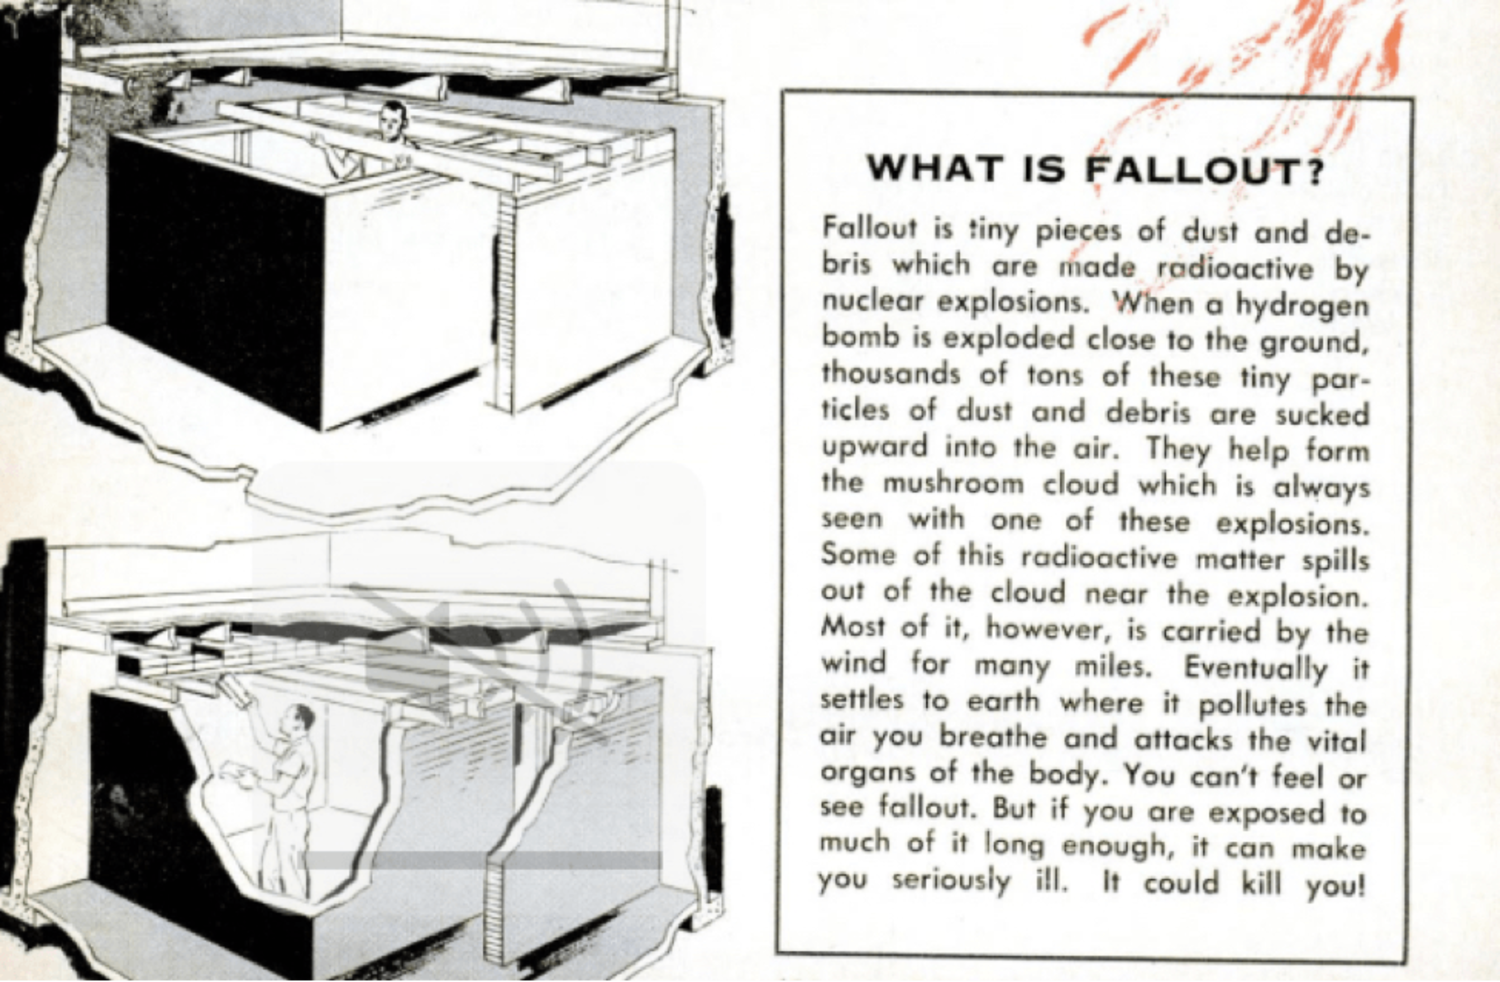 An October 1960 feature in Popular Mechanics provided educational advice on fallout and how to avoid it.